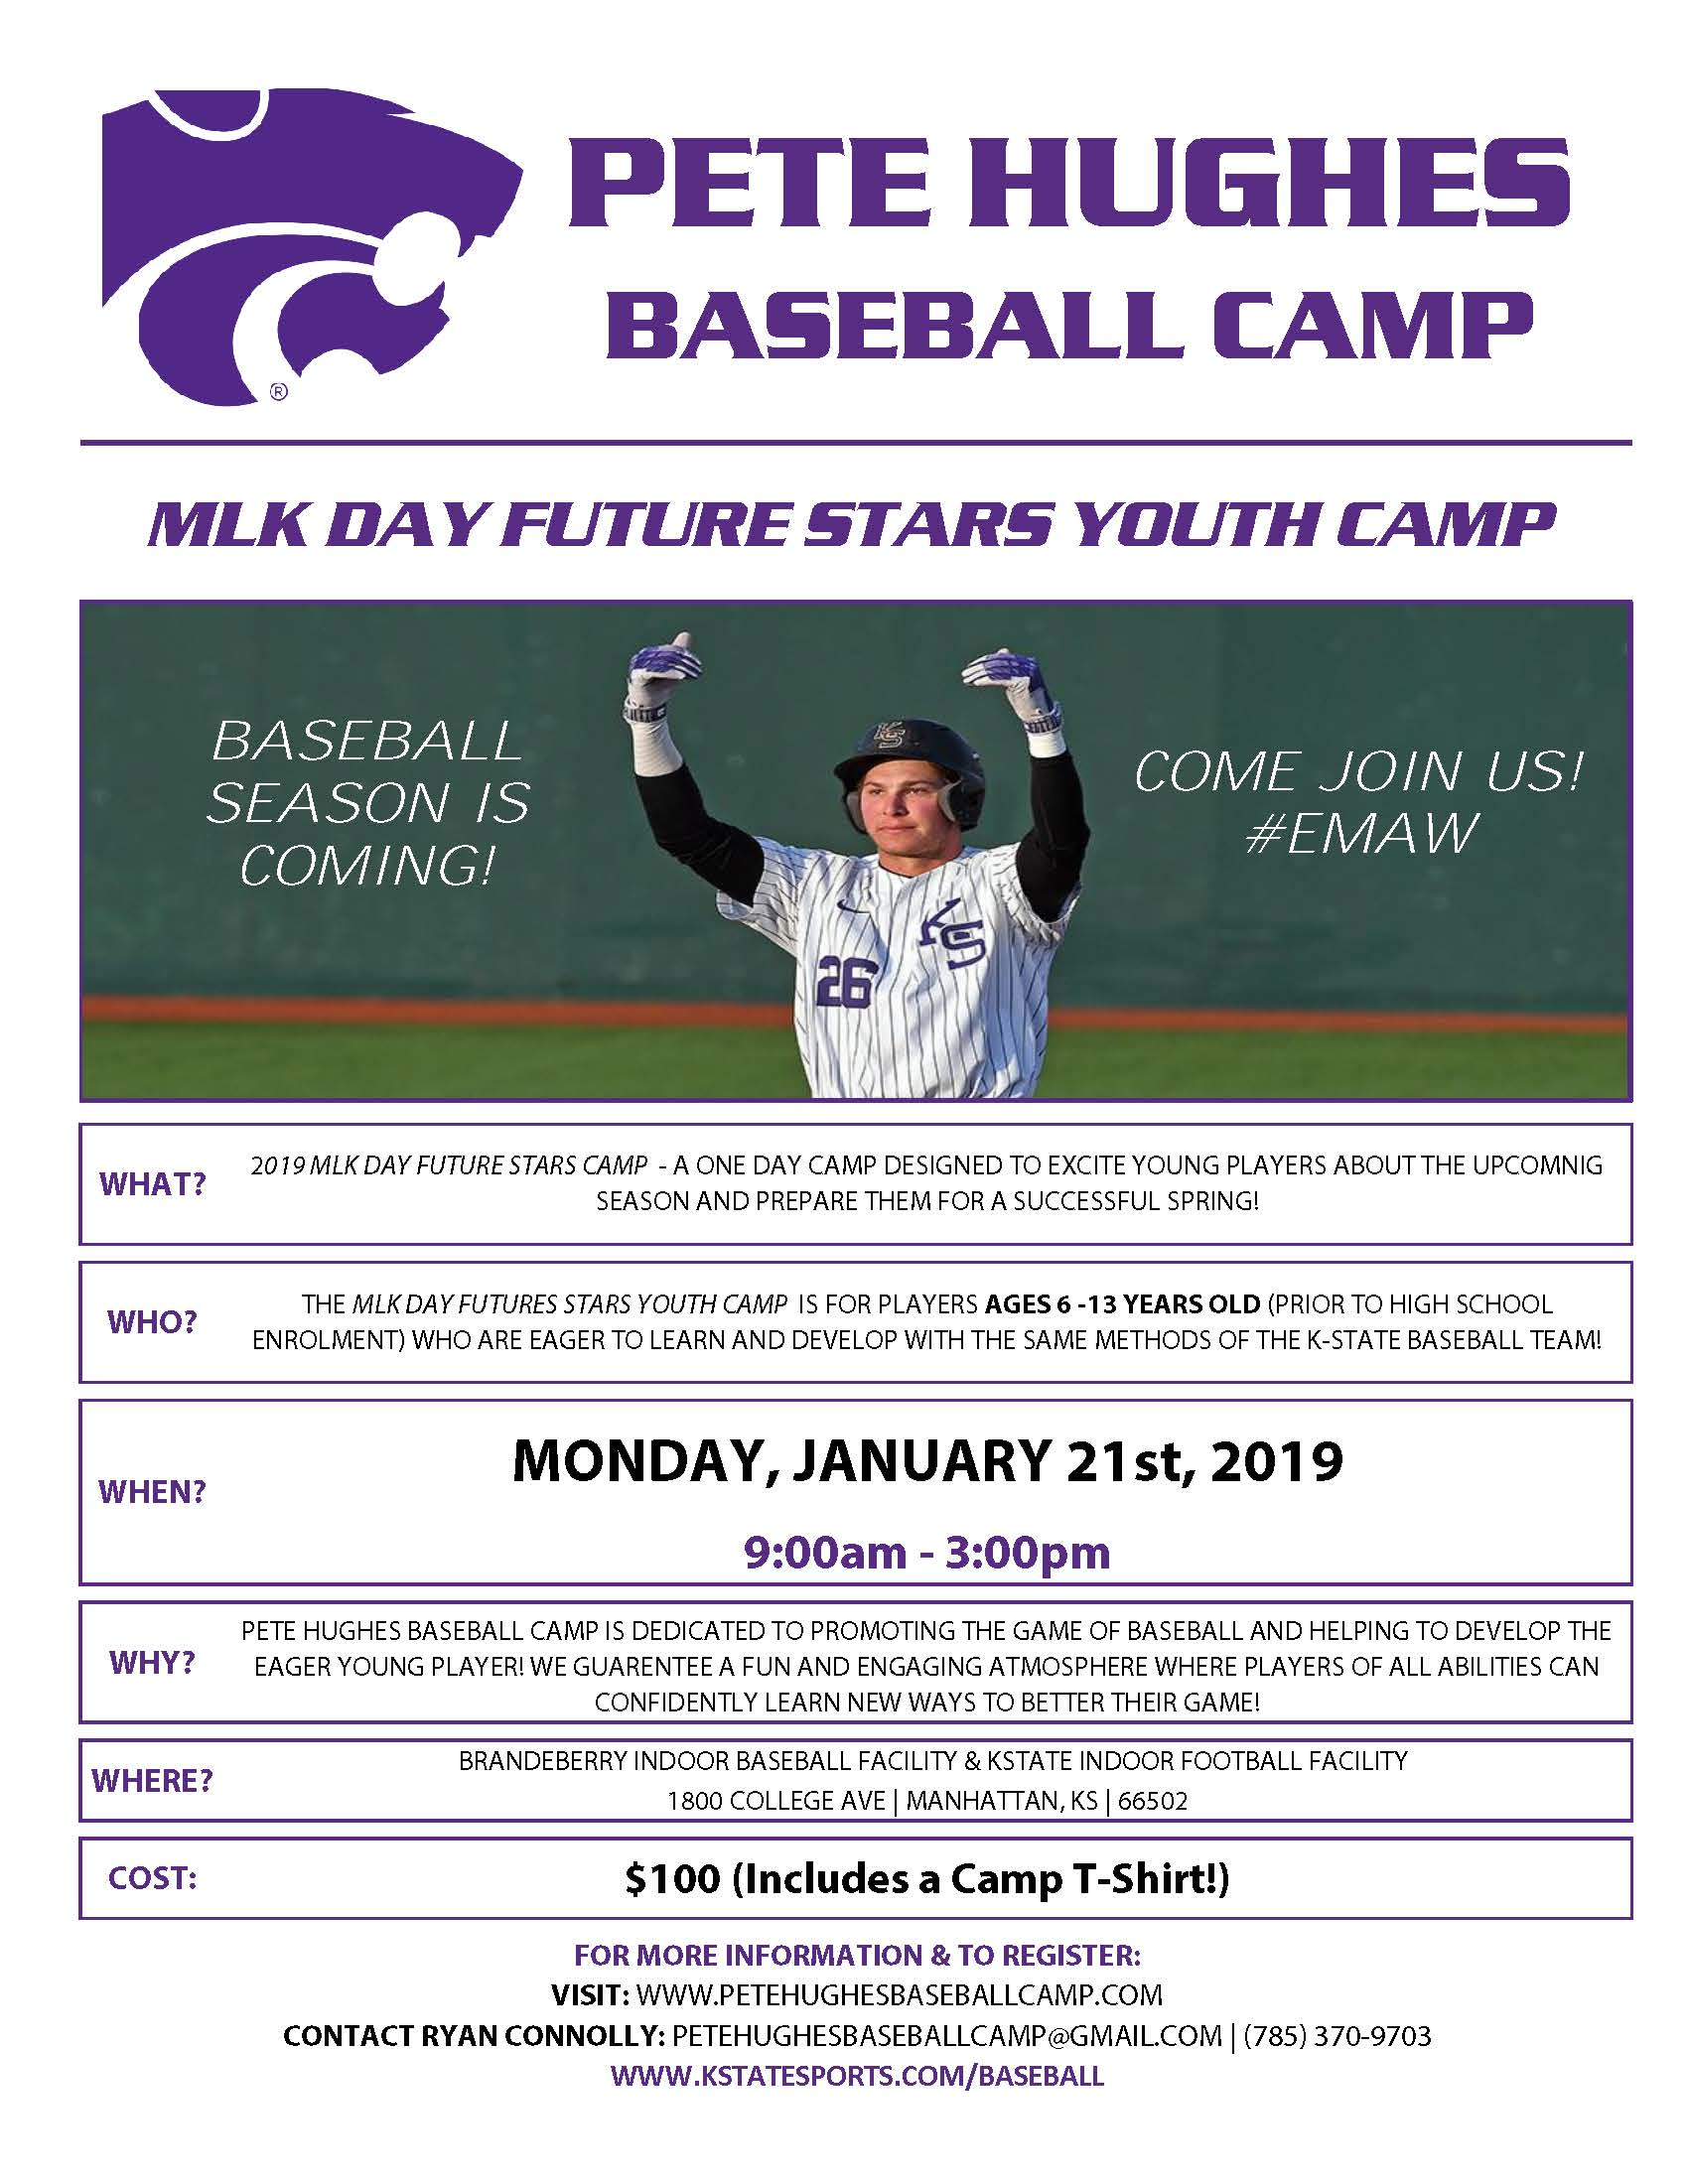 Flyer for Pete Hughes Baseball Camp. All information is above.